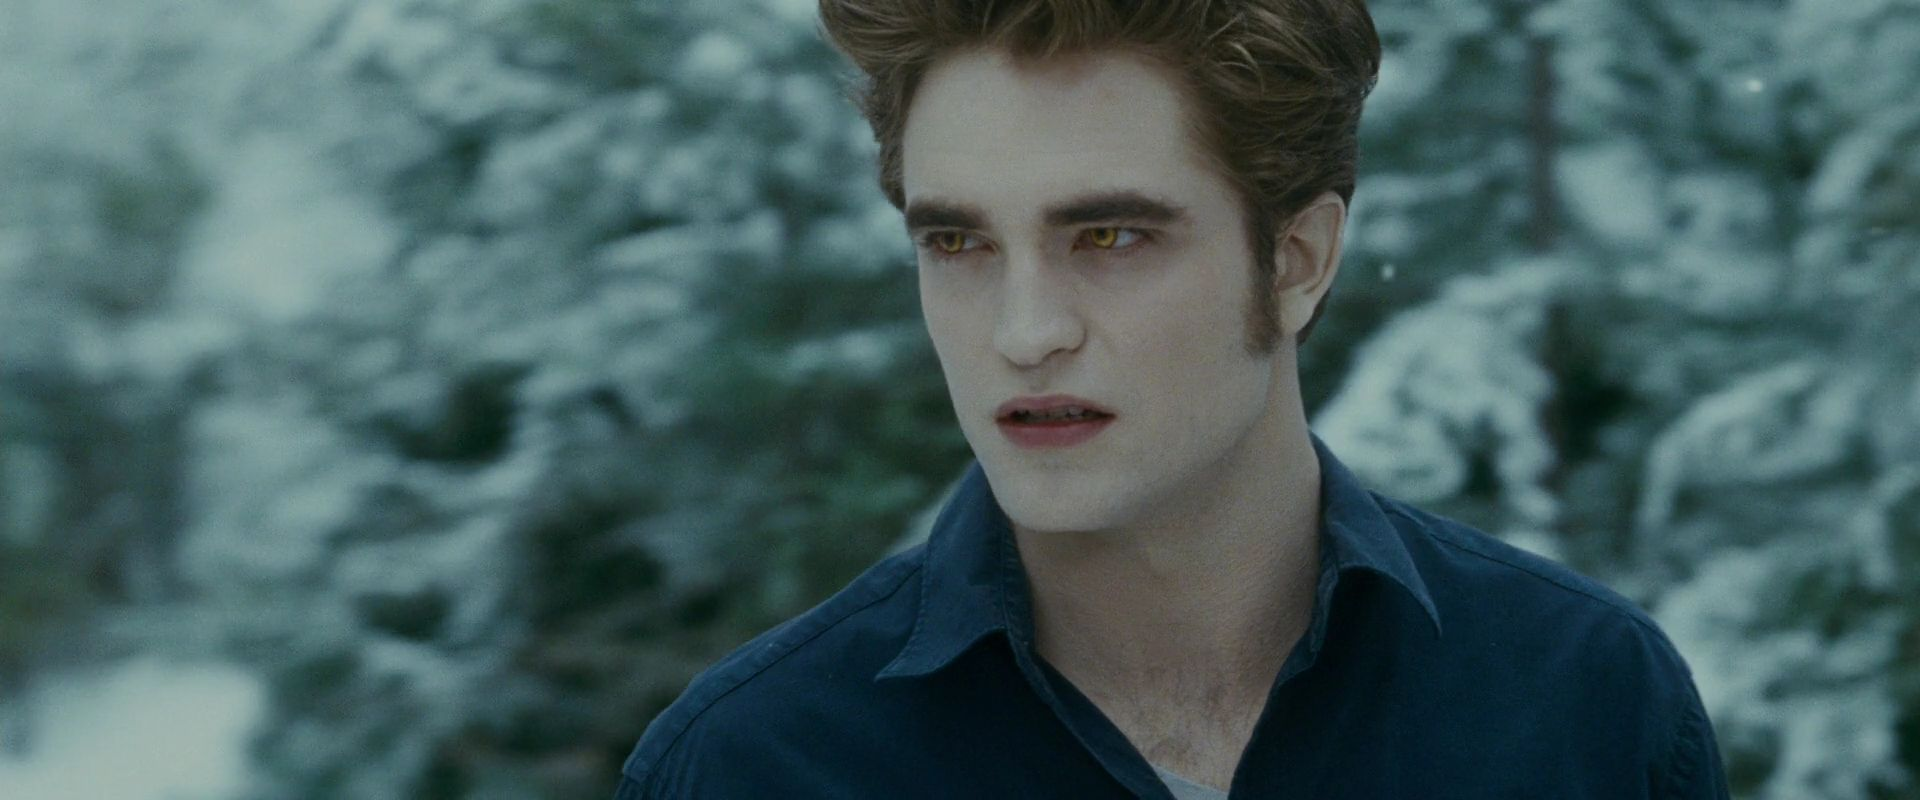 Edward Cullen Images Eclipse Hd Wallpaper And Background